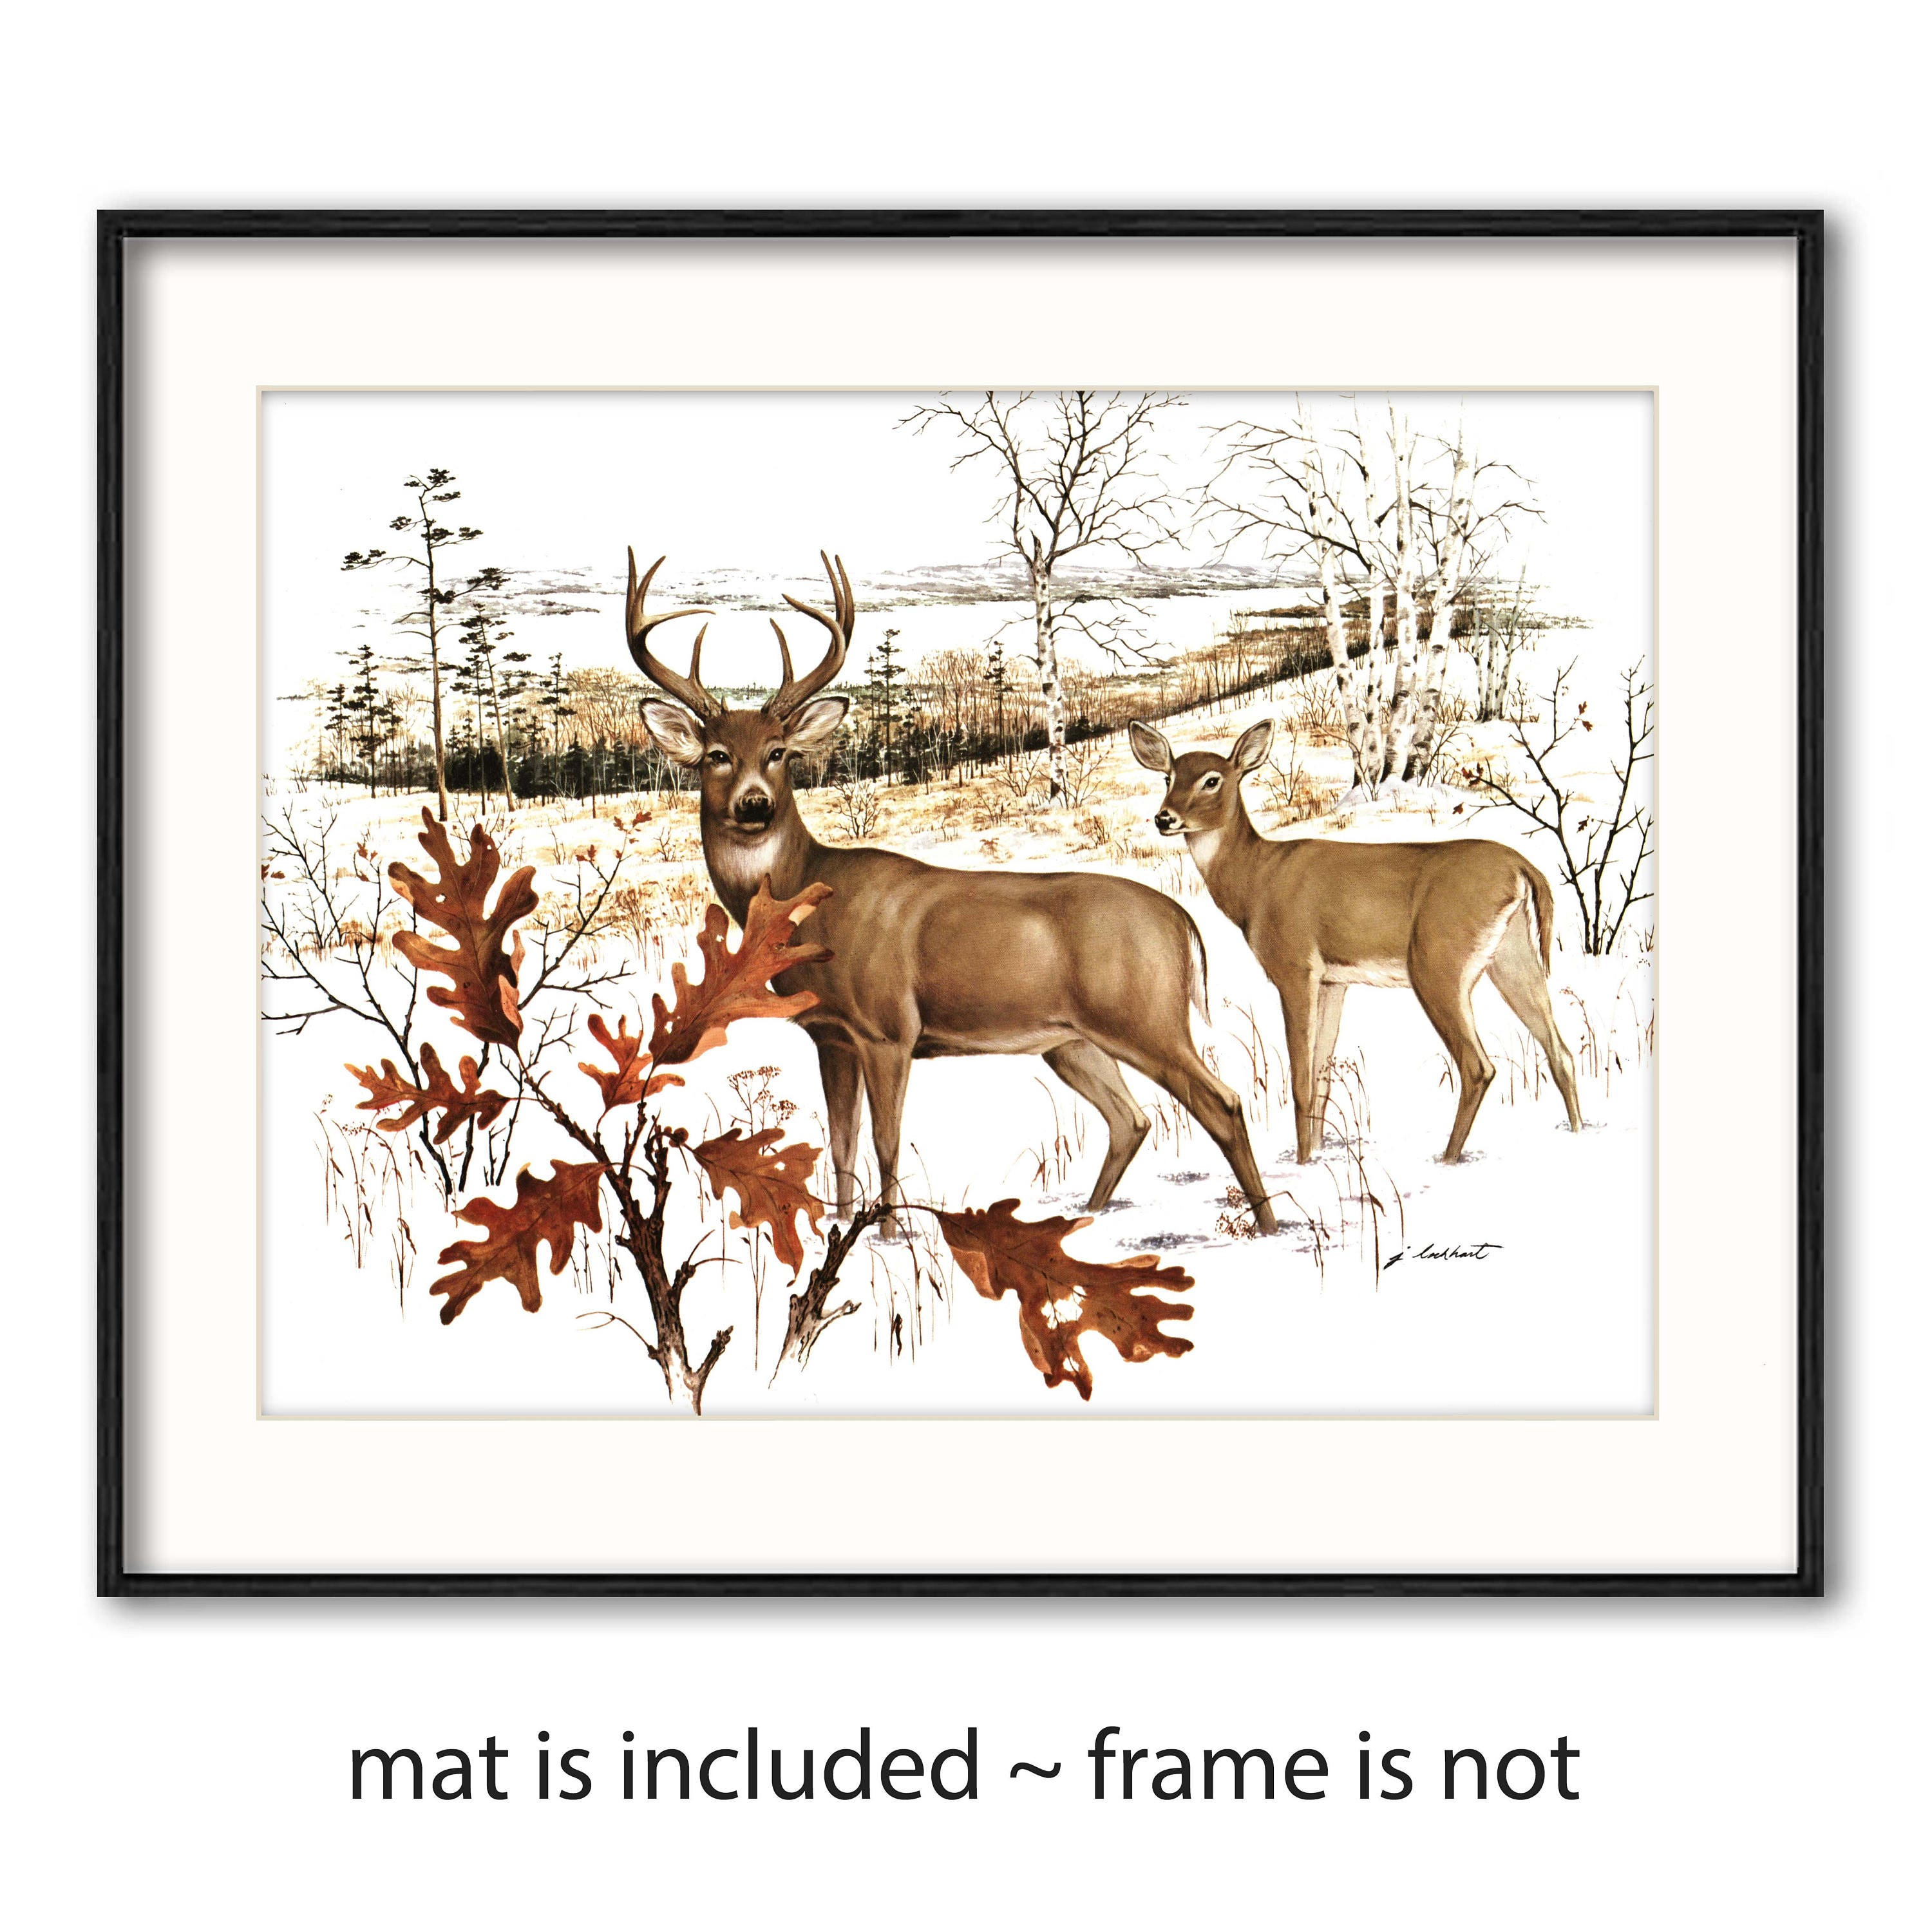 Vintage Deer Art Print W Mat Fathers Day Gift Idea Rustic